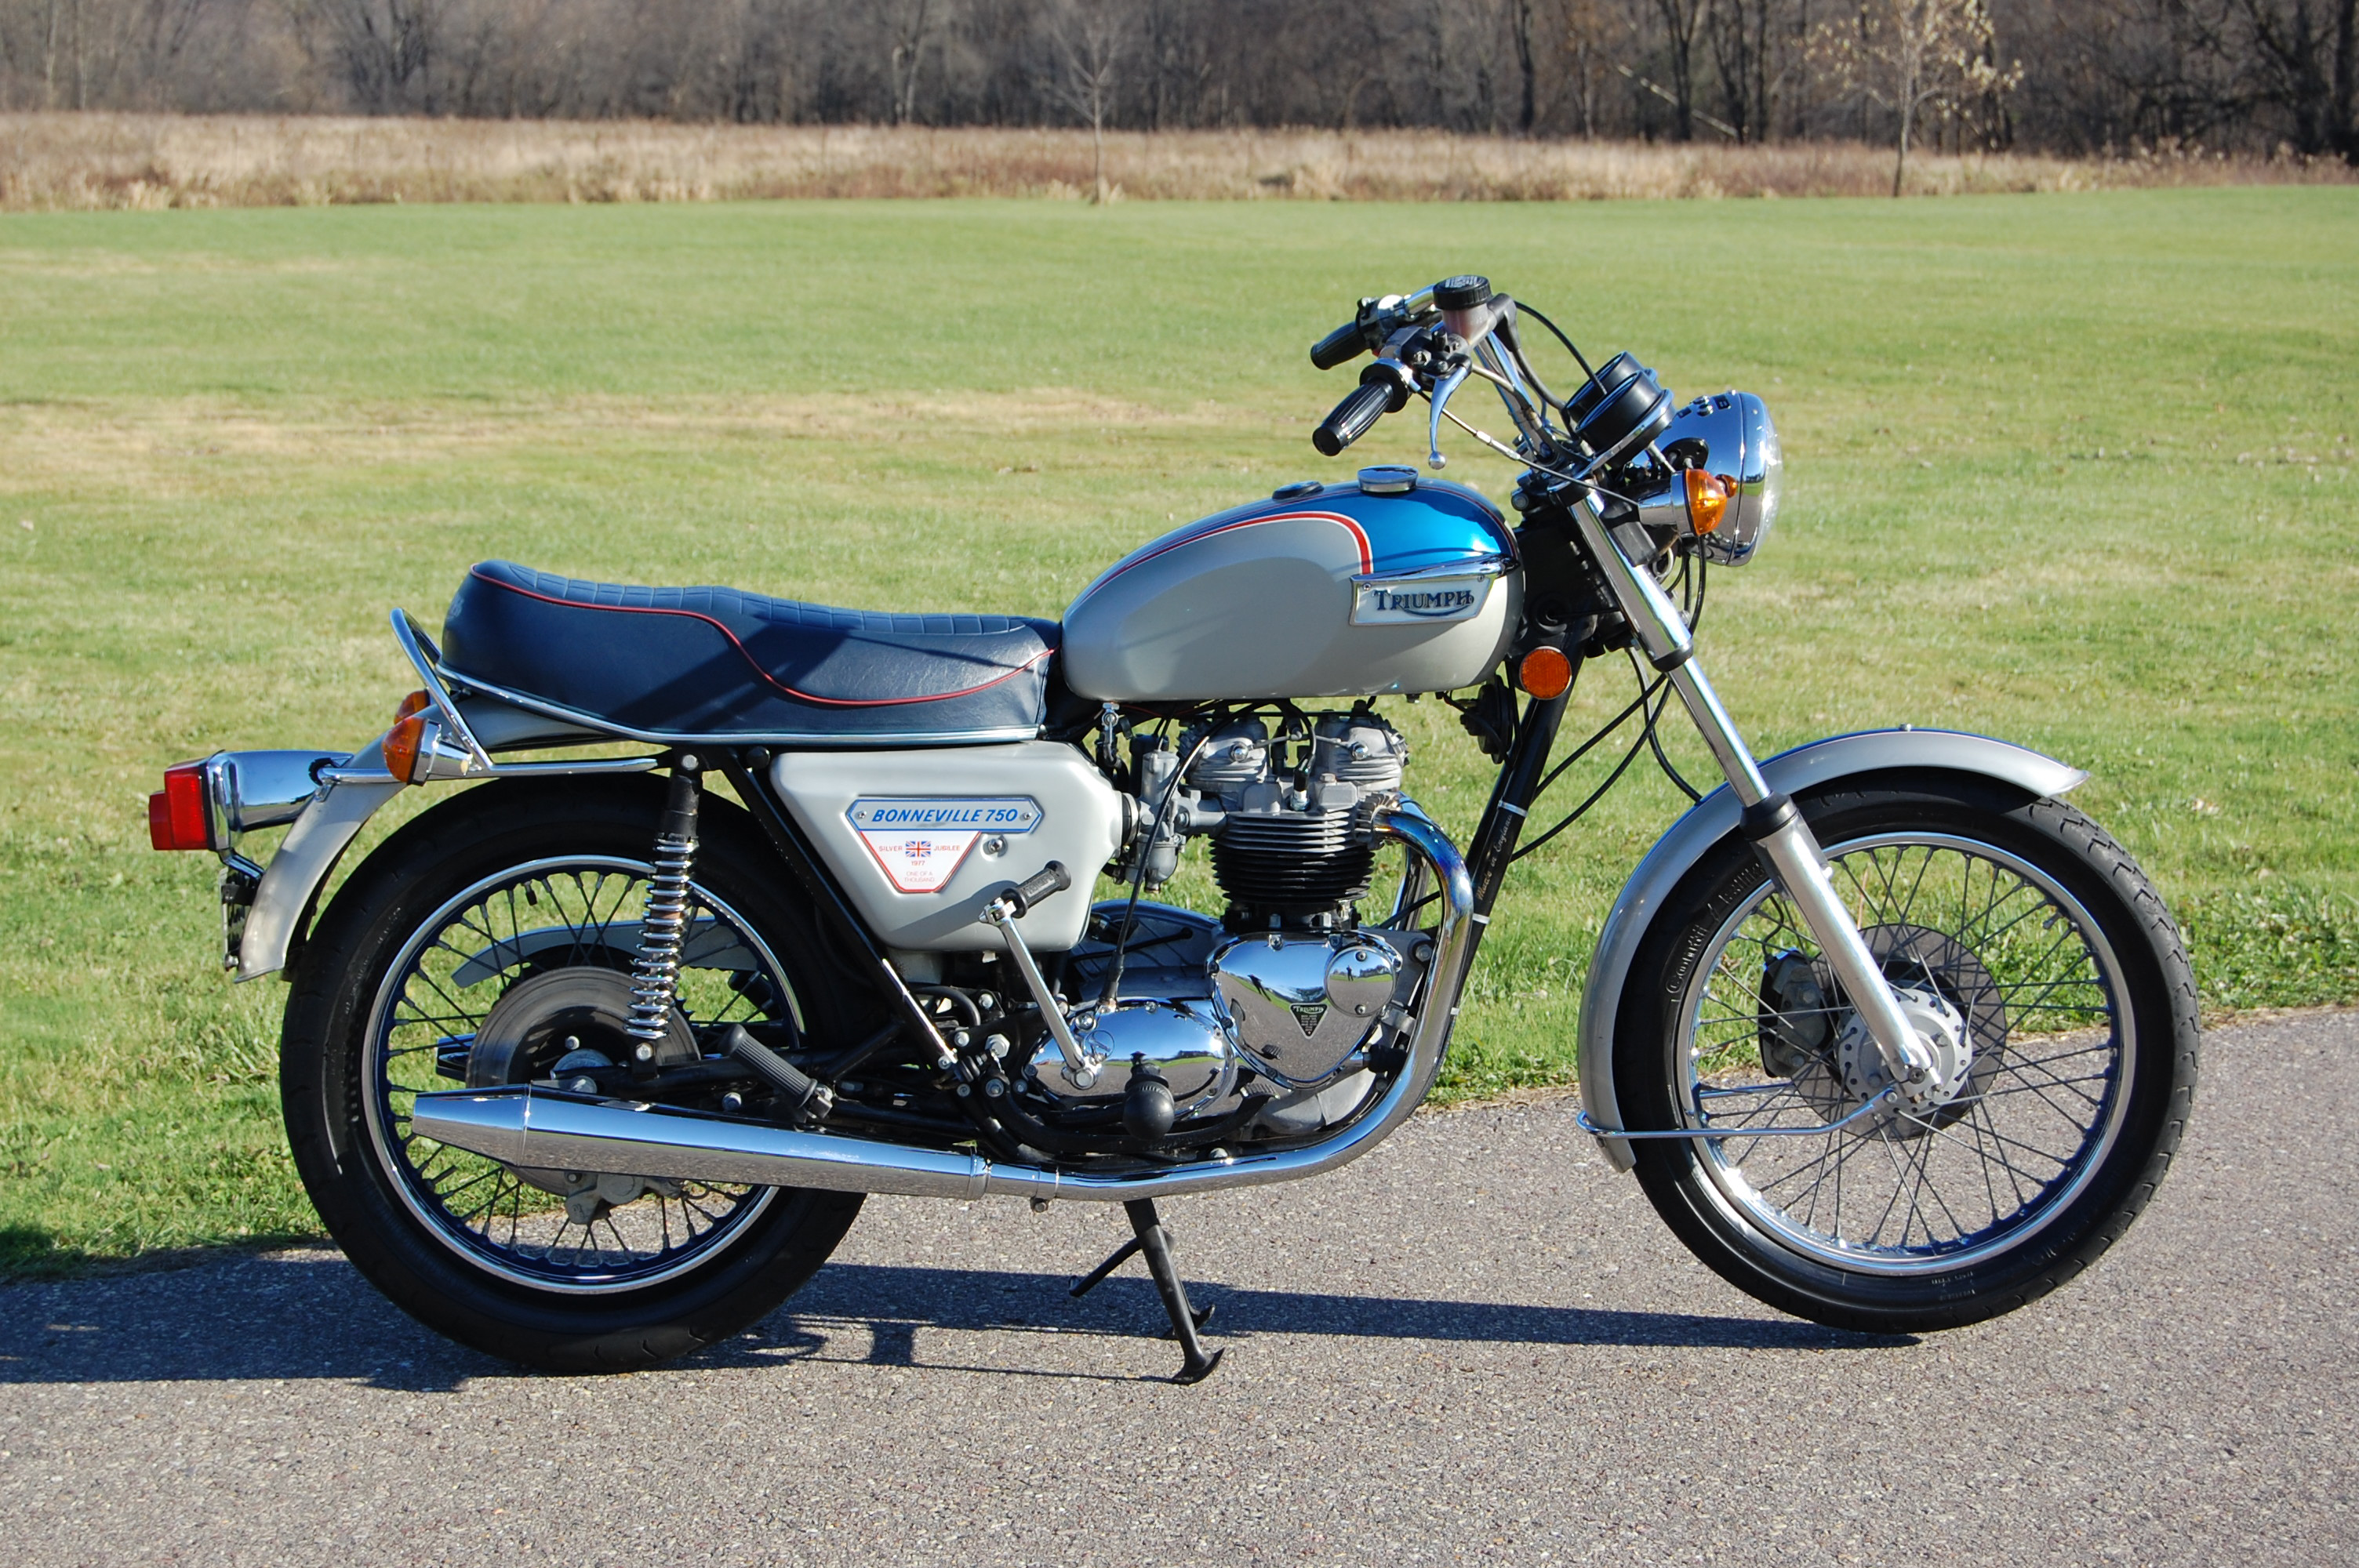 1977 Triumph Bonneville Jubilee right side